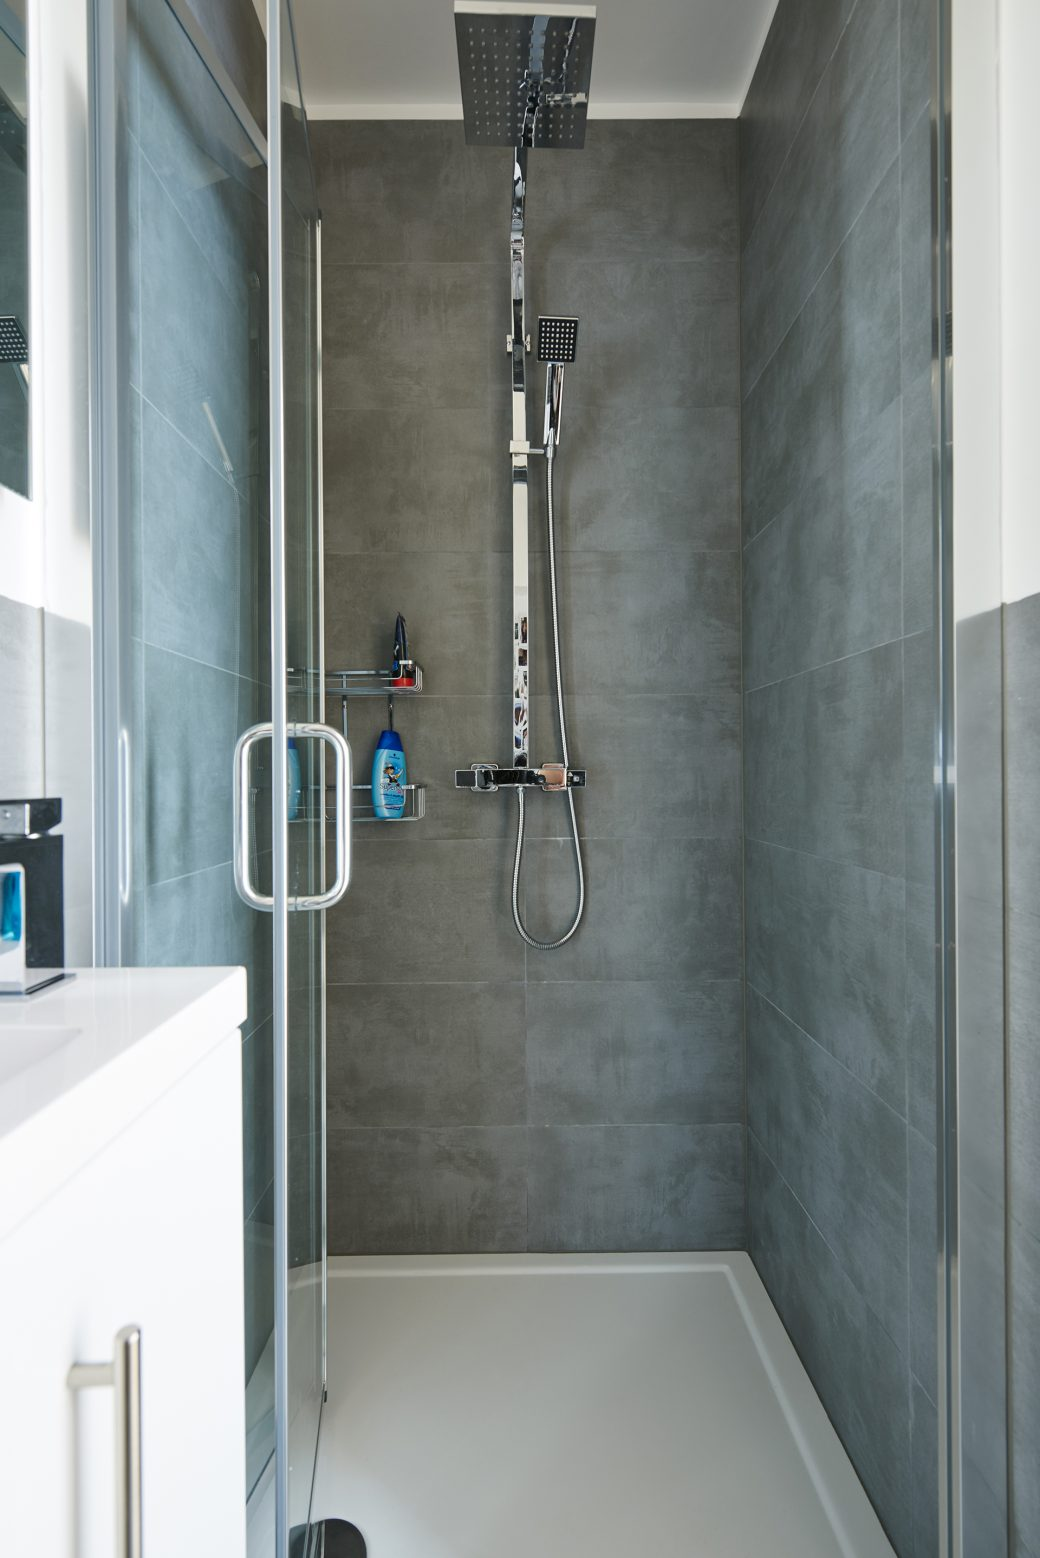 Close up of shower